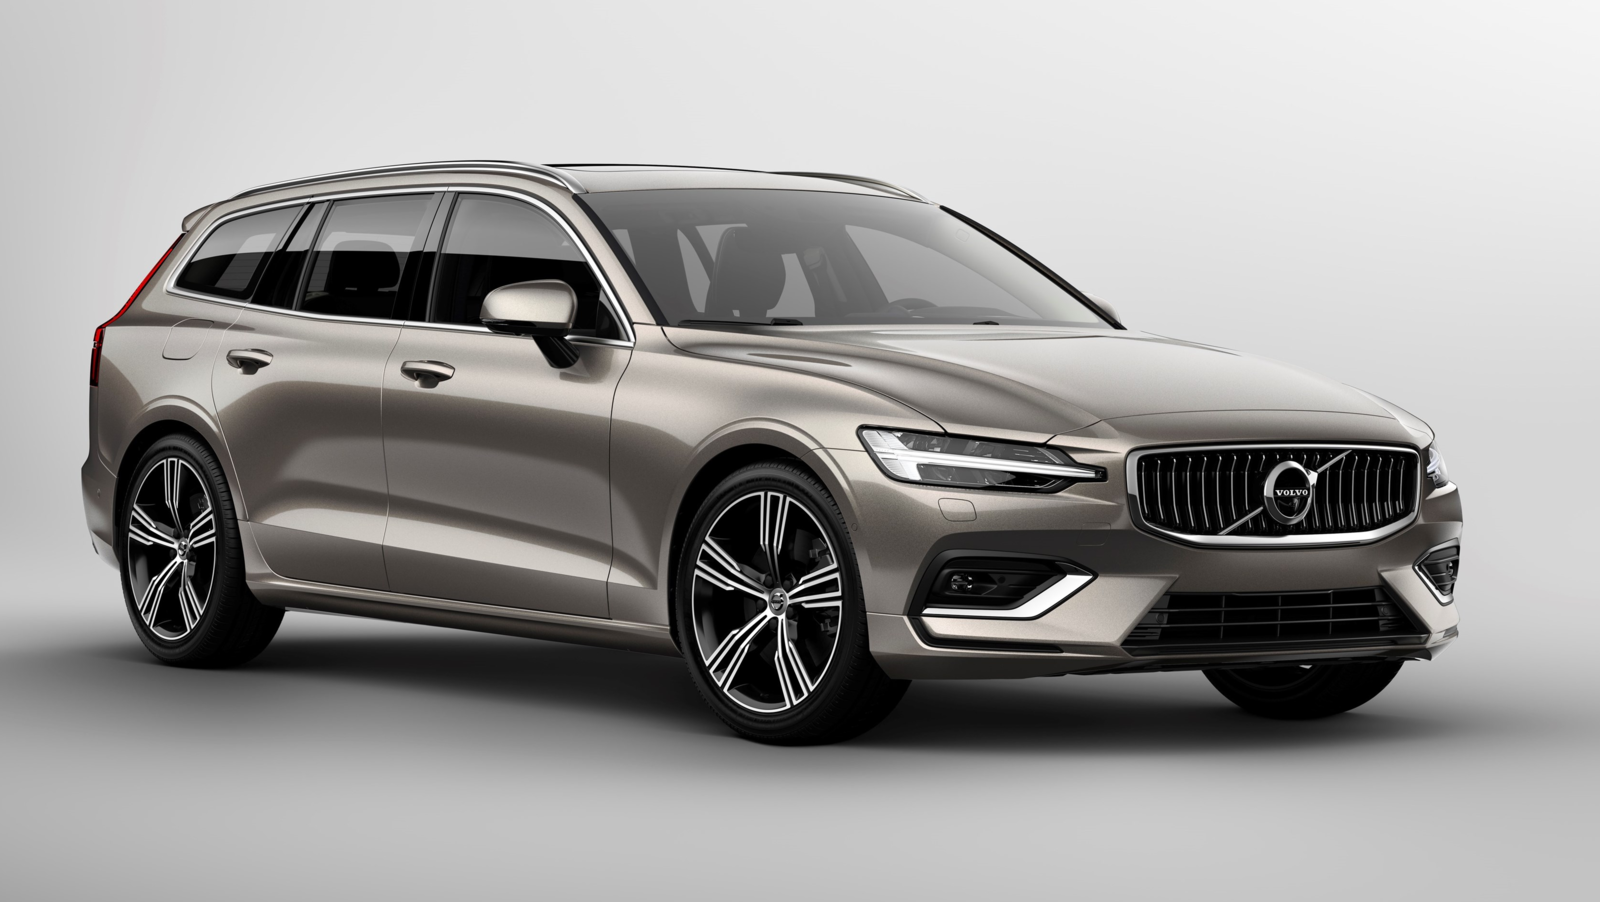 2019 Volvo XC70 Crossover SUV Review >> 2019 Volvo V60 Overview Cargurus